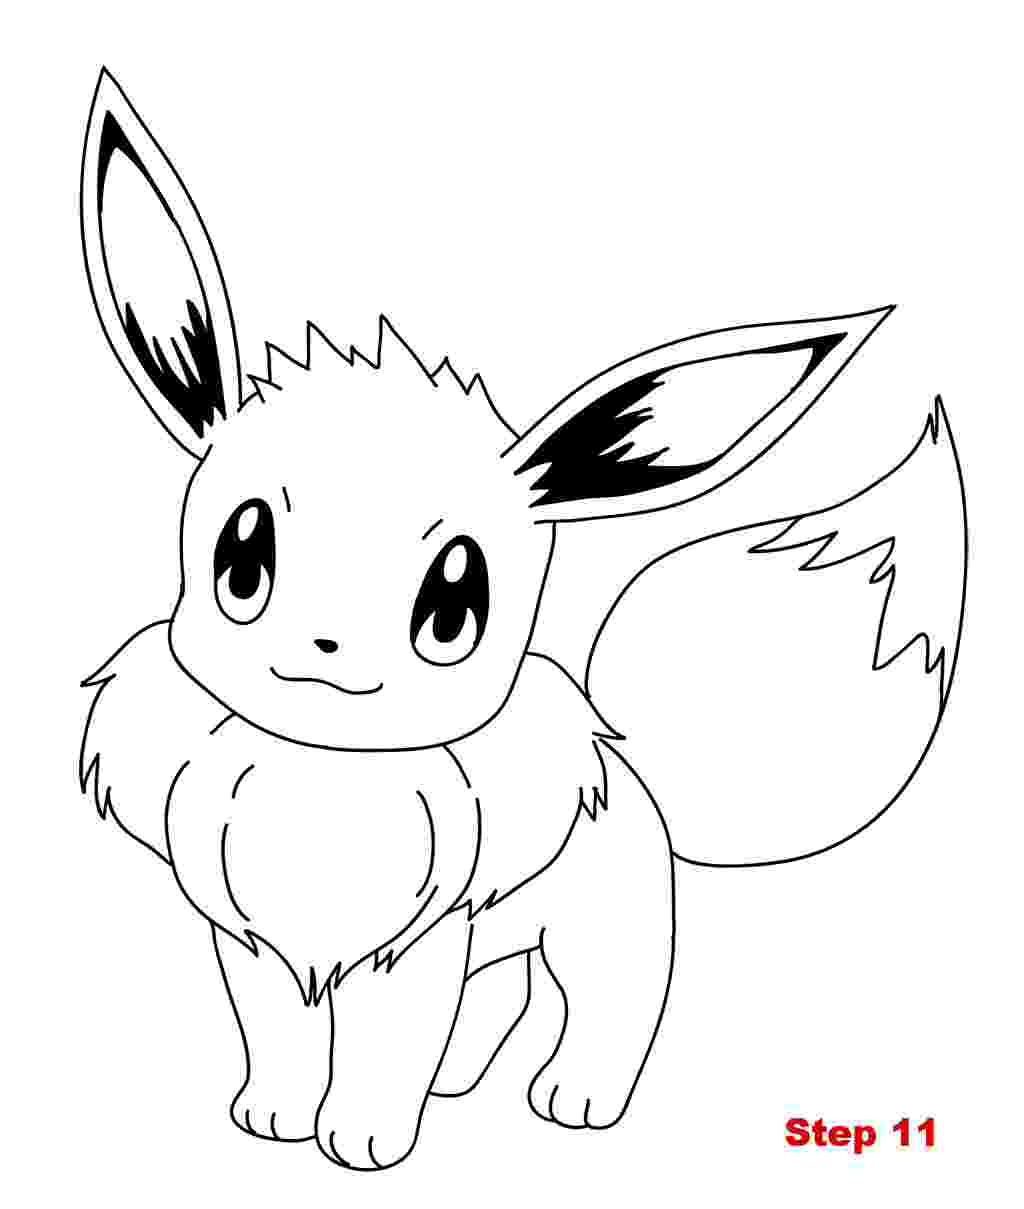 eevee coloring pages to print eevee pokemon coloring page free printable coloring pages eevee print pages coloring to